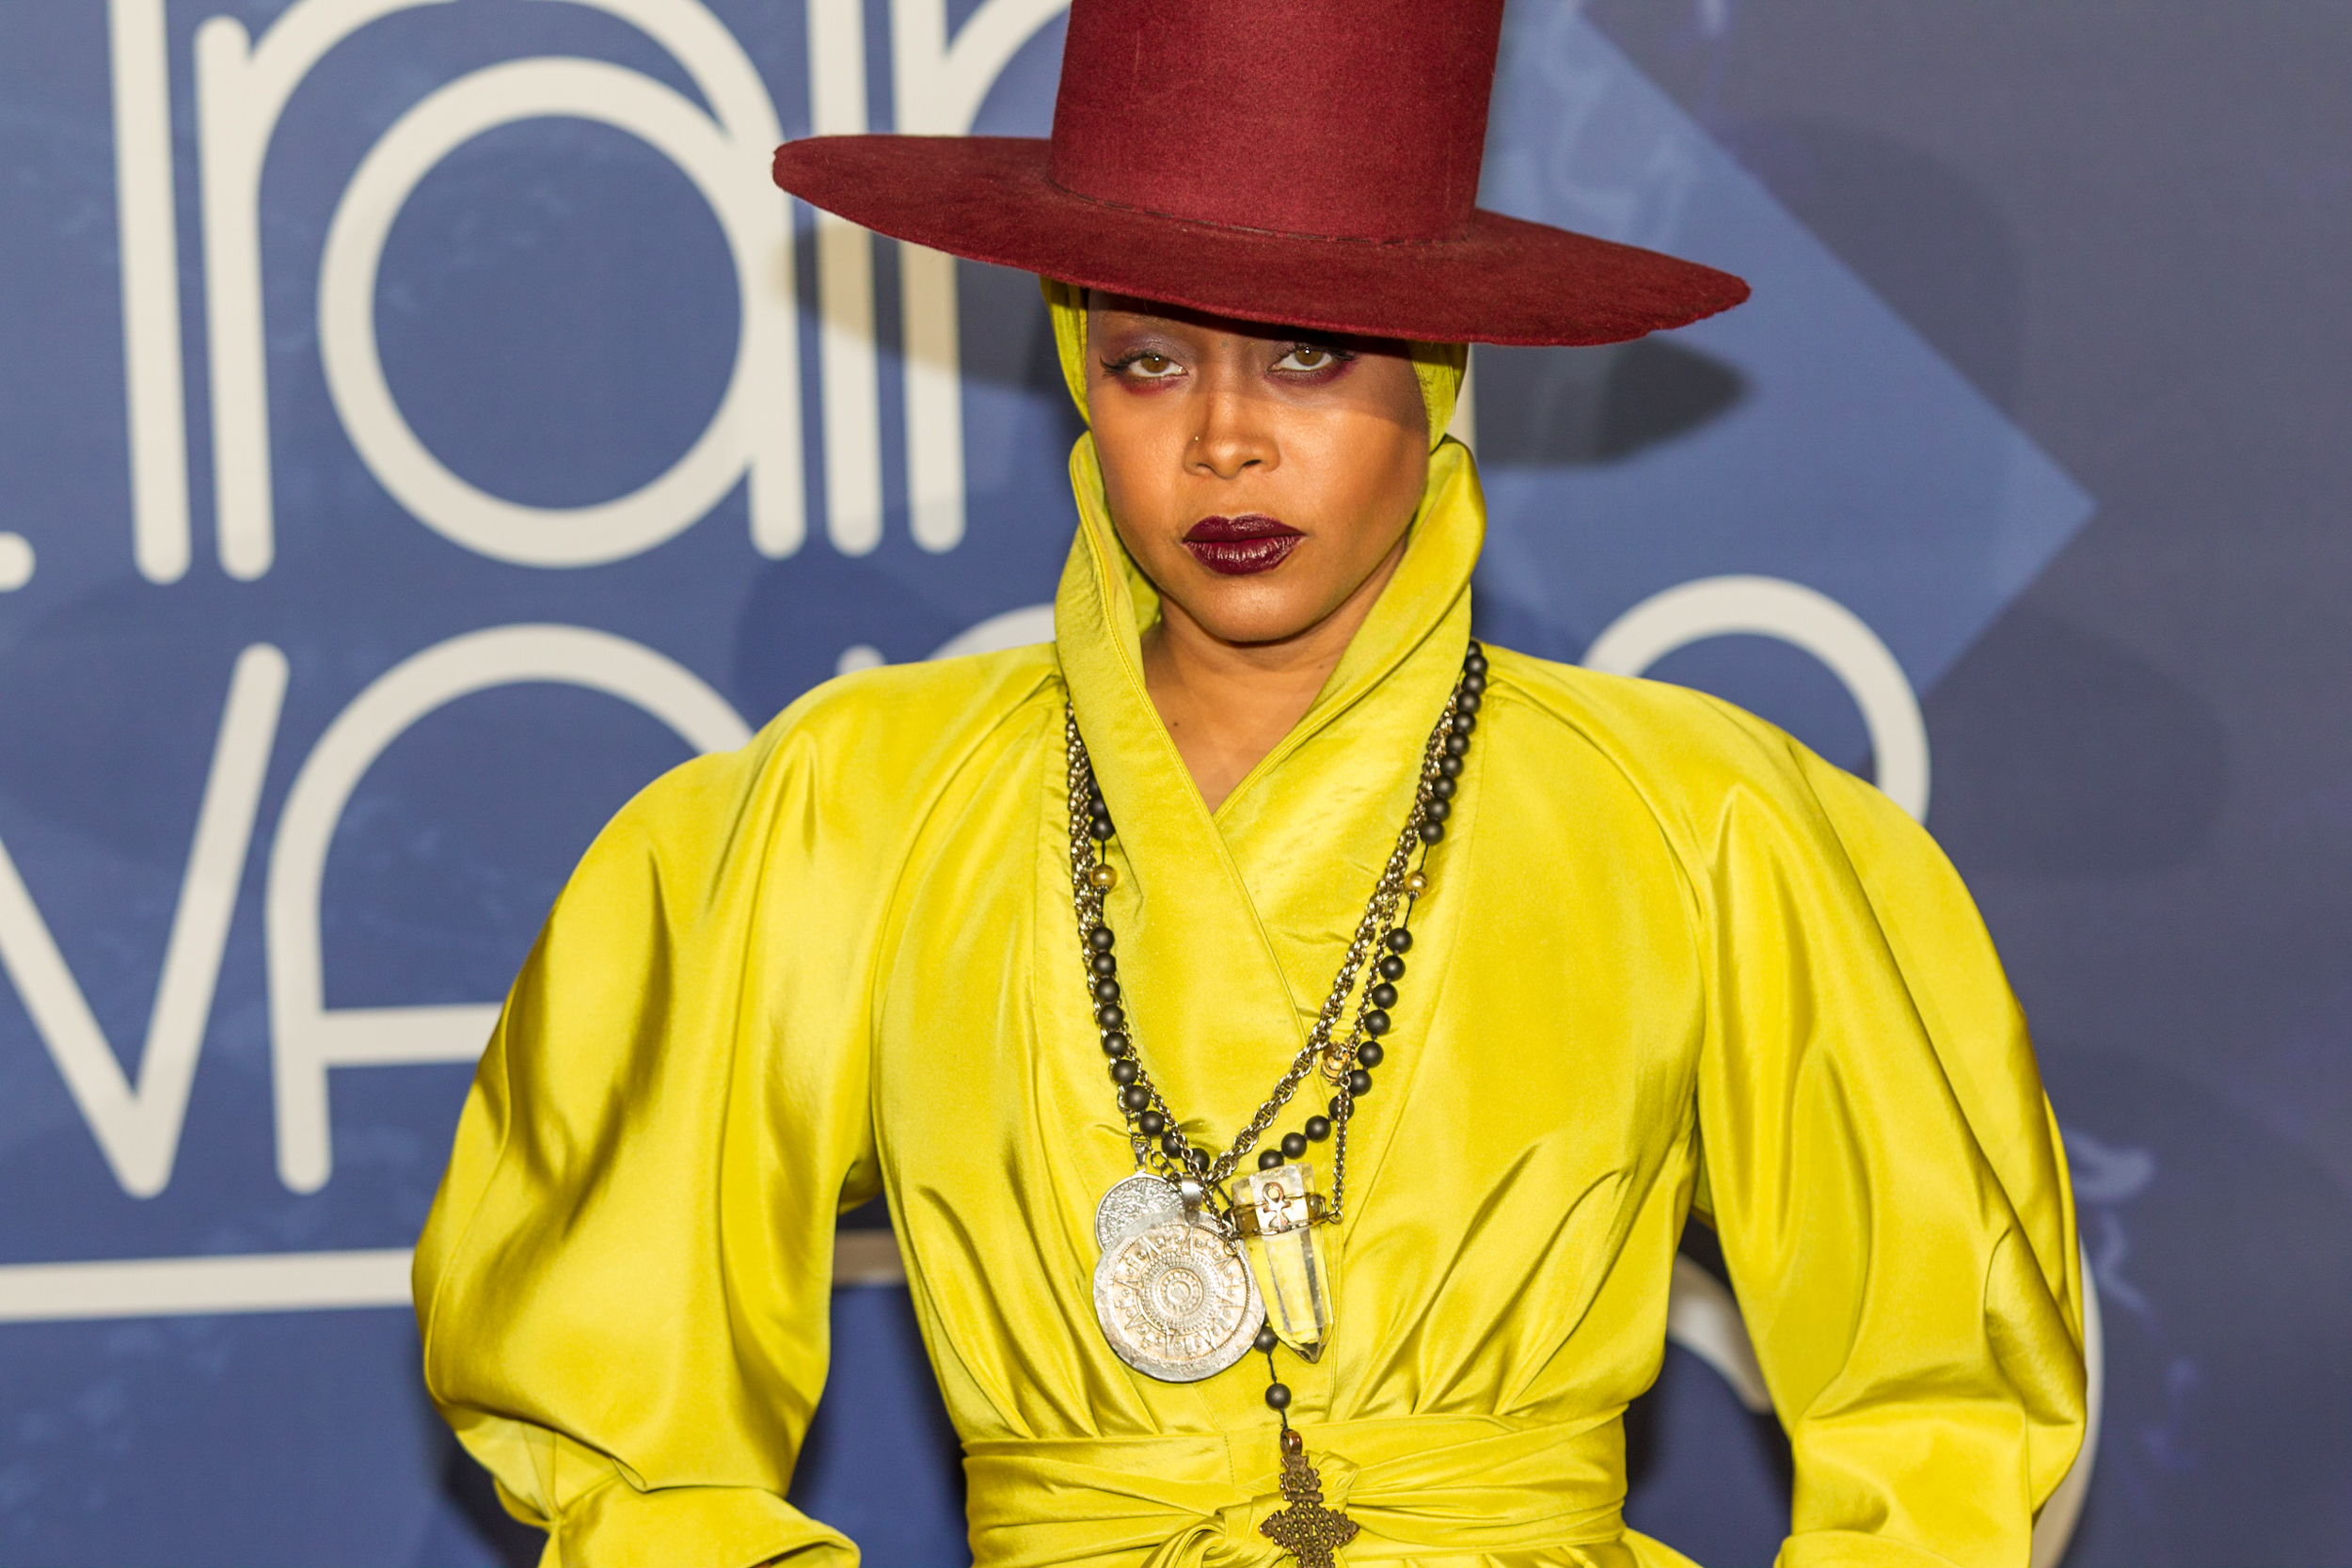 Erykah Badu's Vagina-Smelling Incense Sold Out in 19 Minutes